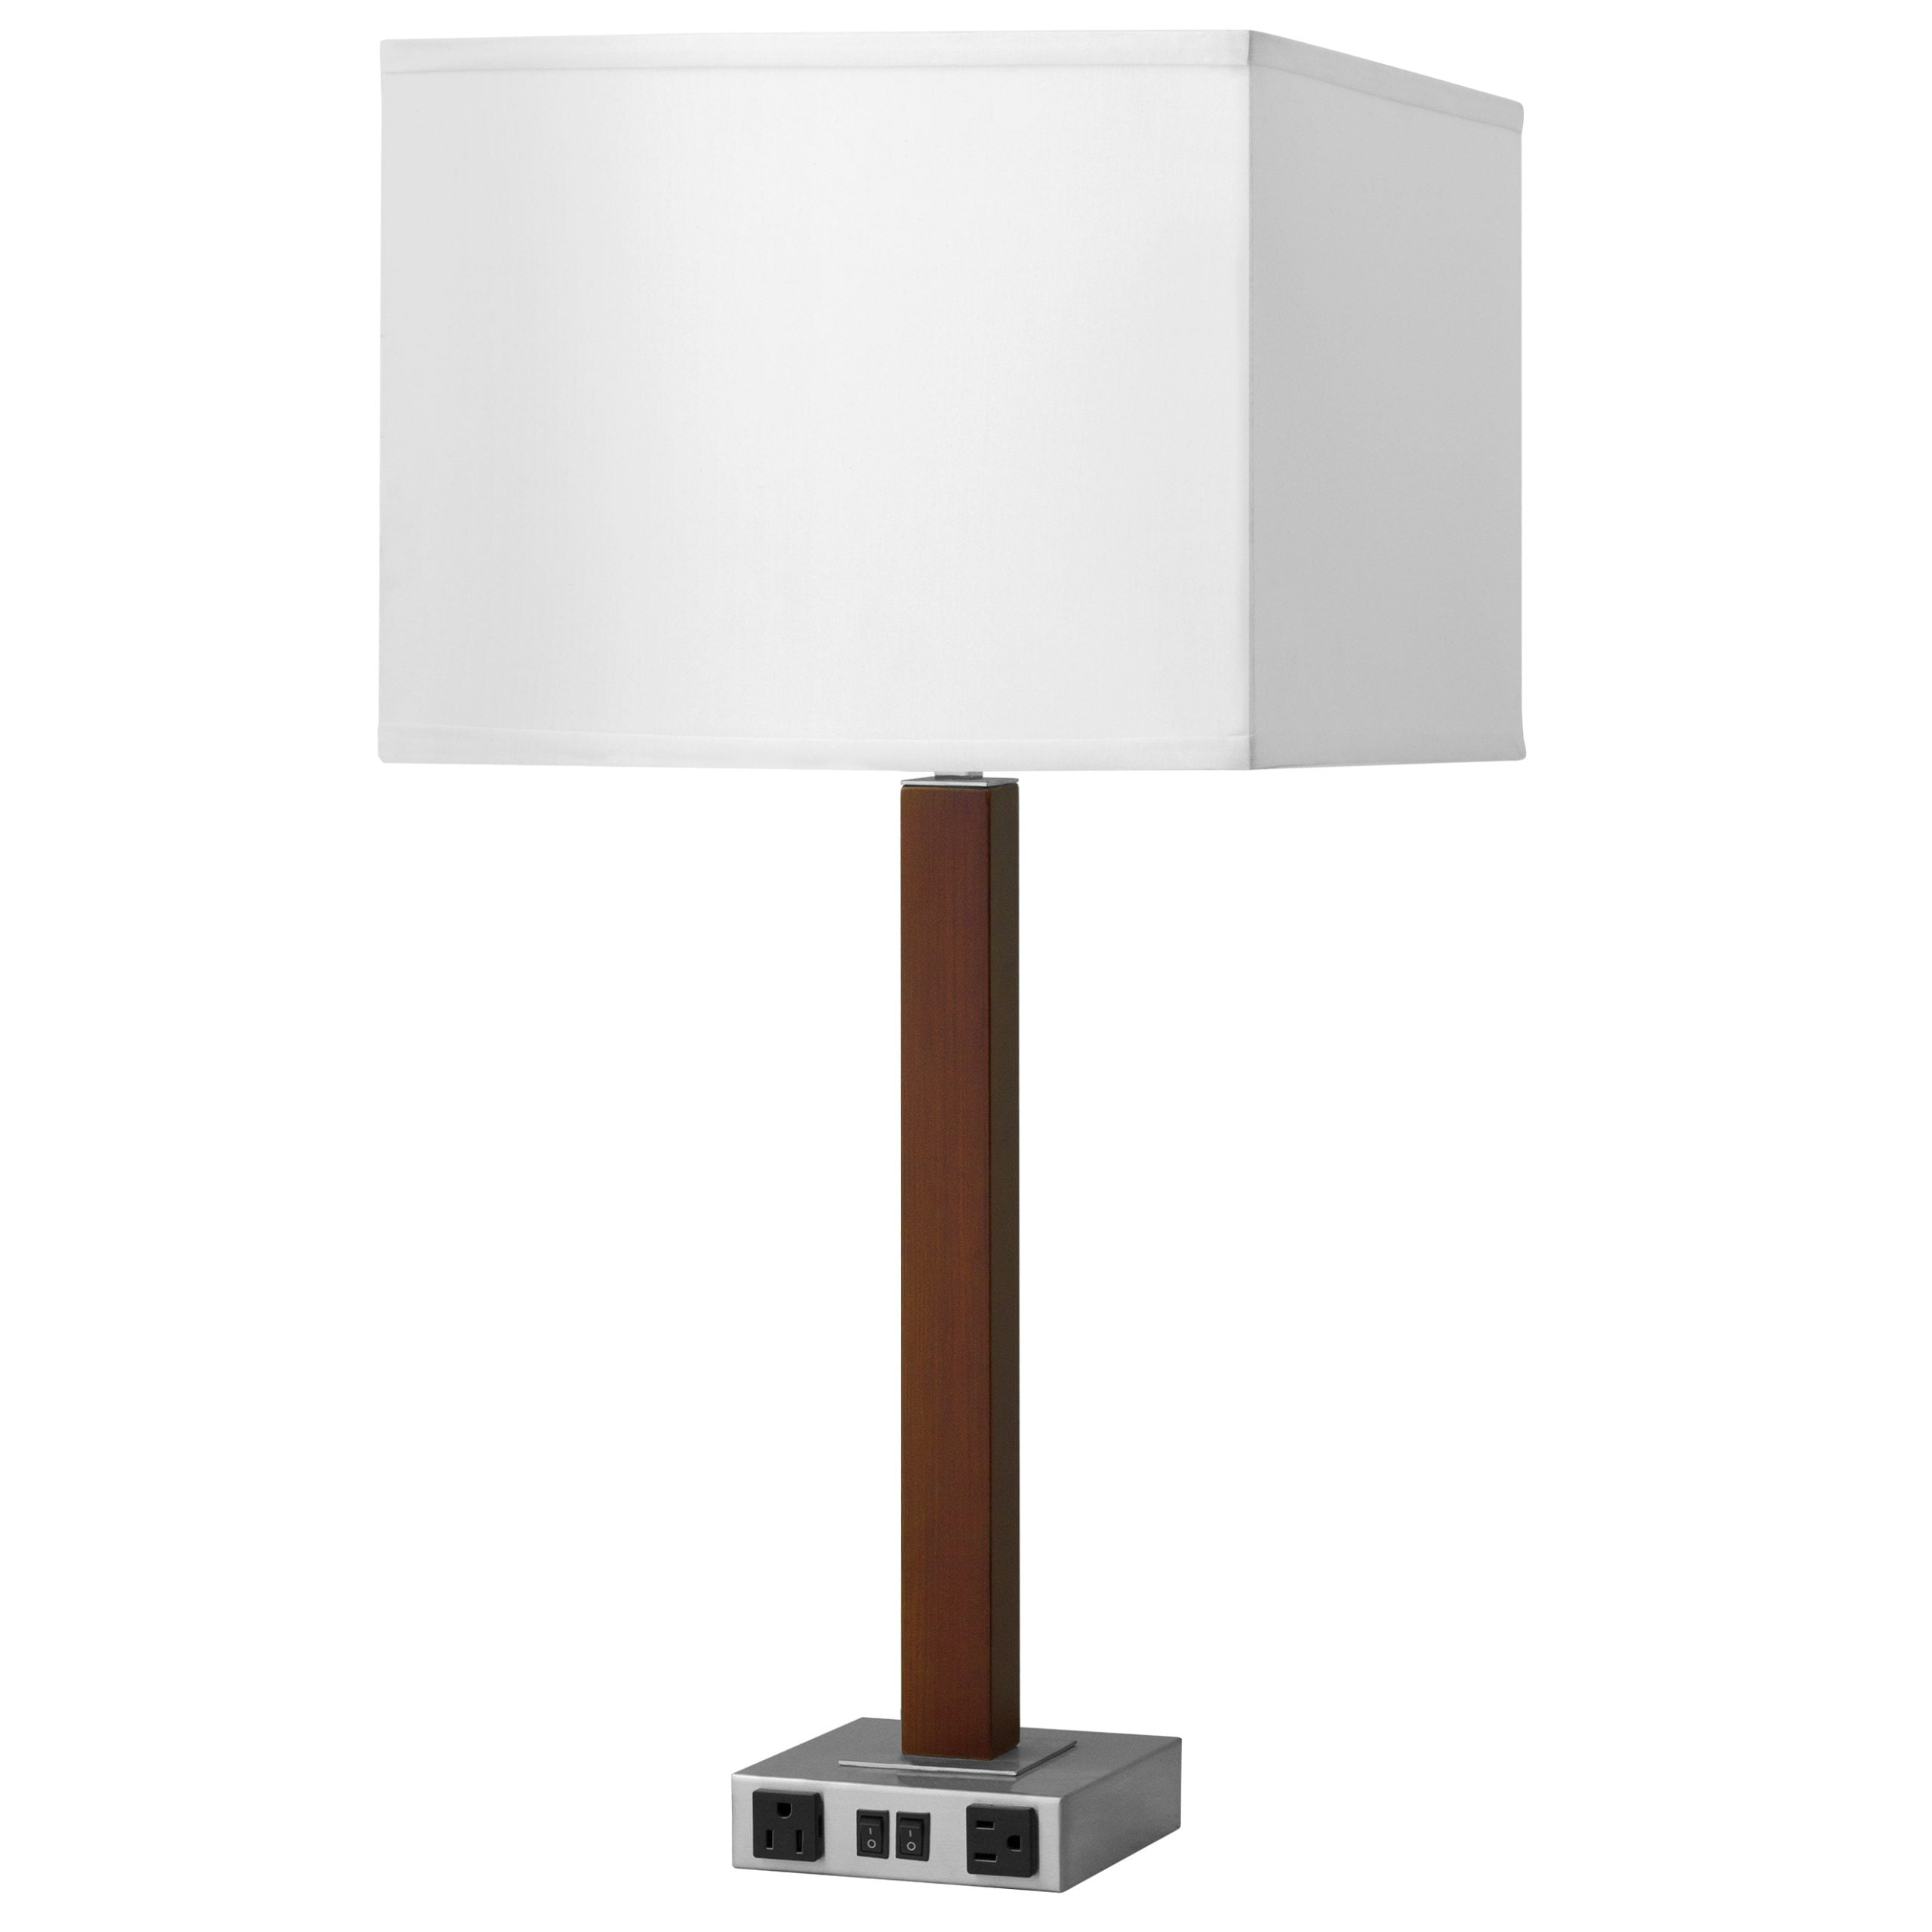 Calibri Twin Table Lamp with 2 Outlets